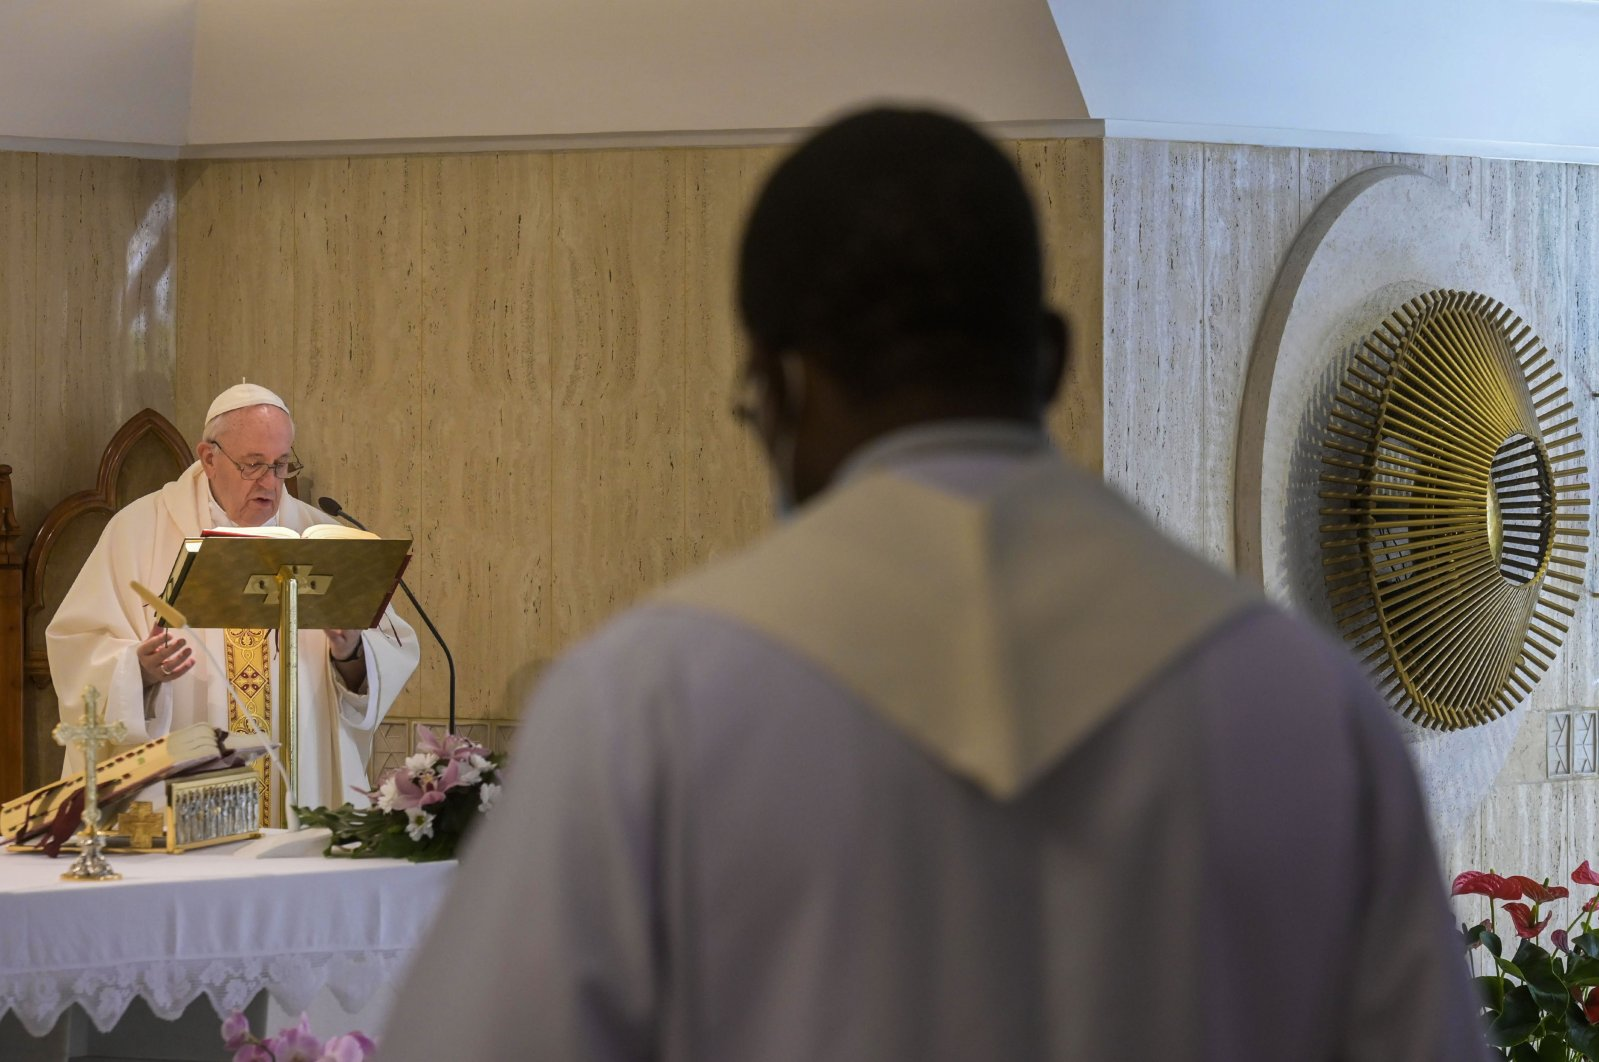 Pope Francis conducts Mass at Santa Marta Chapel to mark the seventh anniversary of his visit to Lampedusa, Vatican City, July 8, 2020. (AFP Photo / Vatican Media handout)